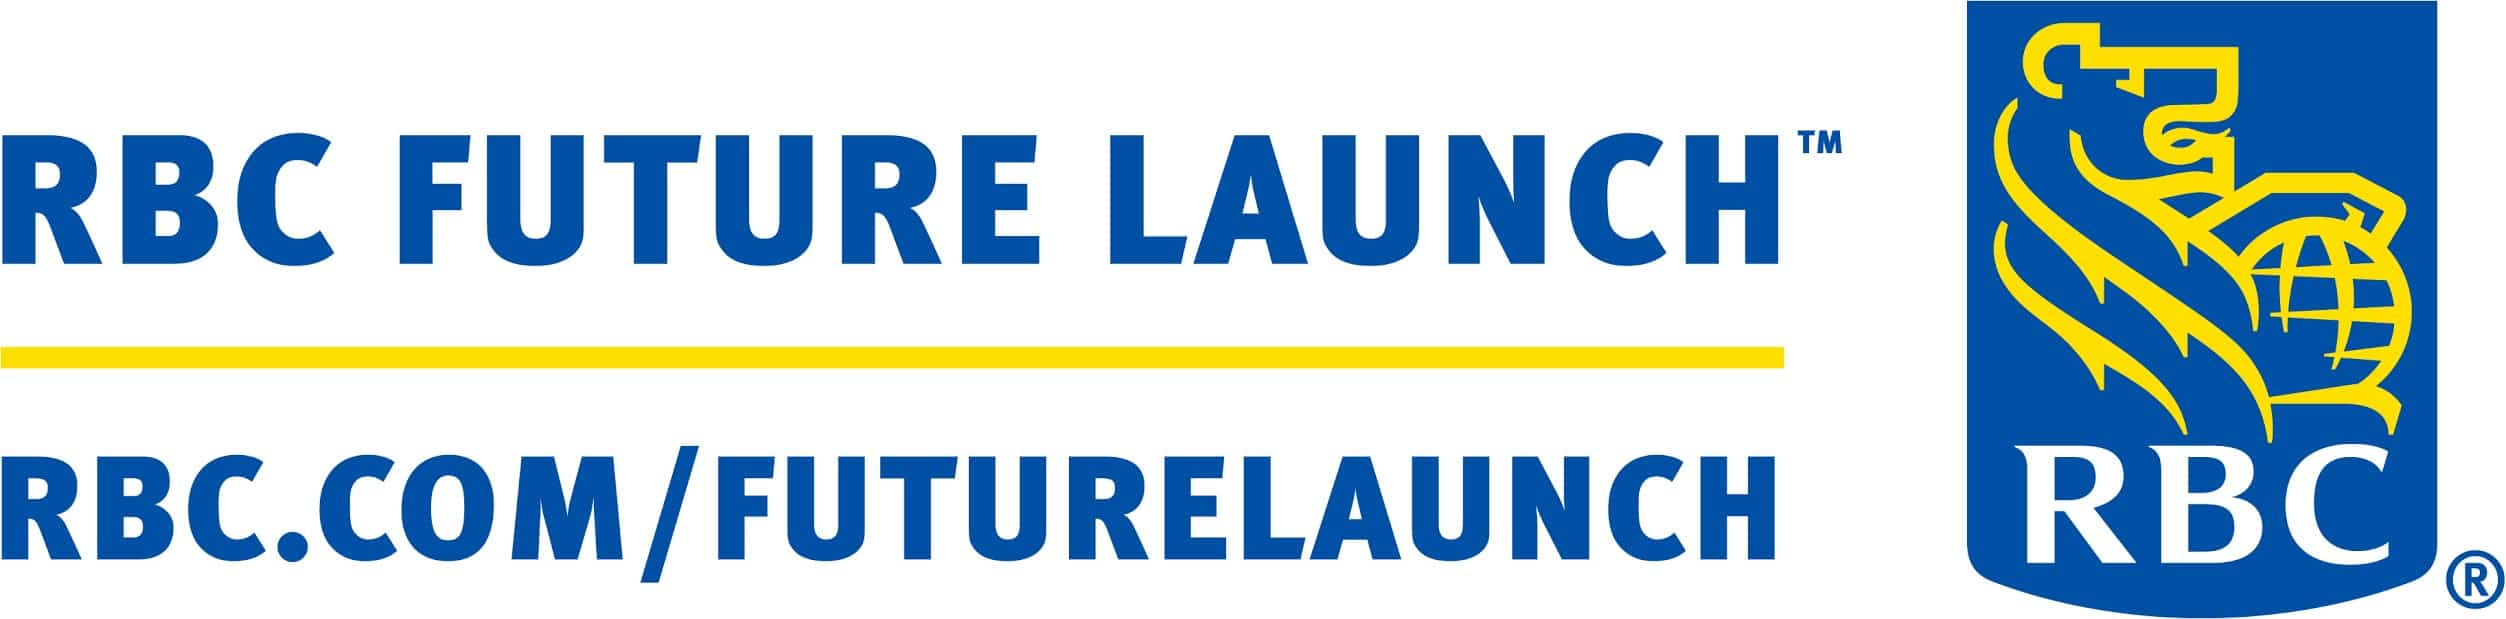 RBC_FutureLaunch_LogoDes_H_rgbPE